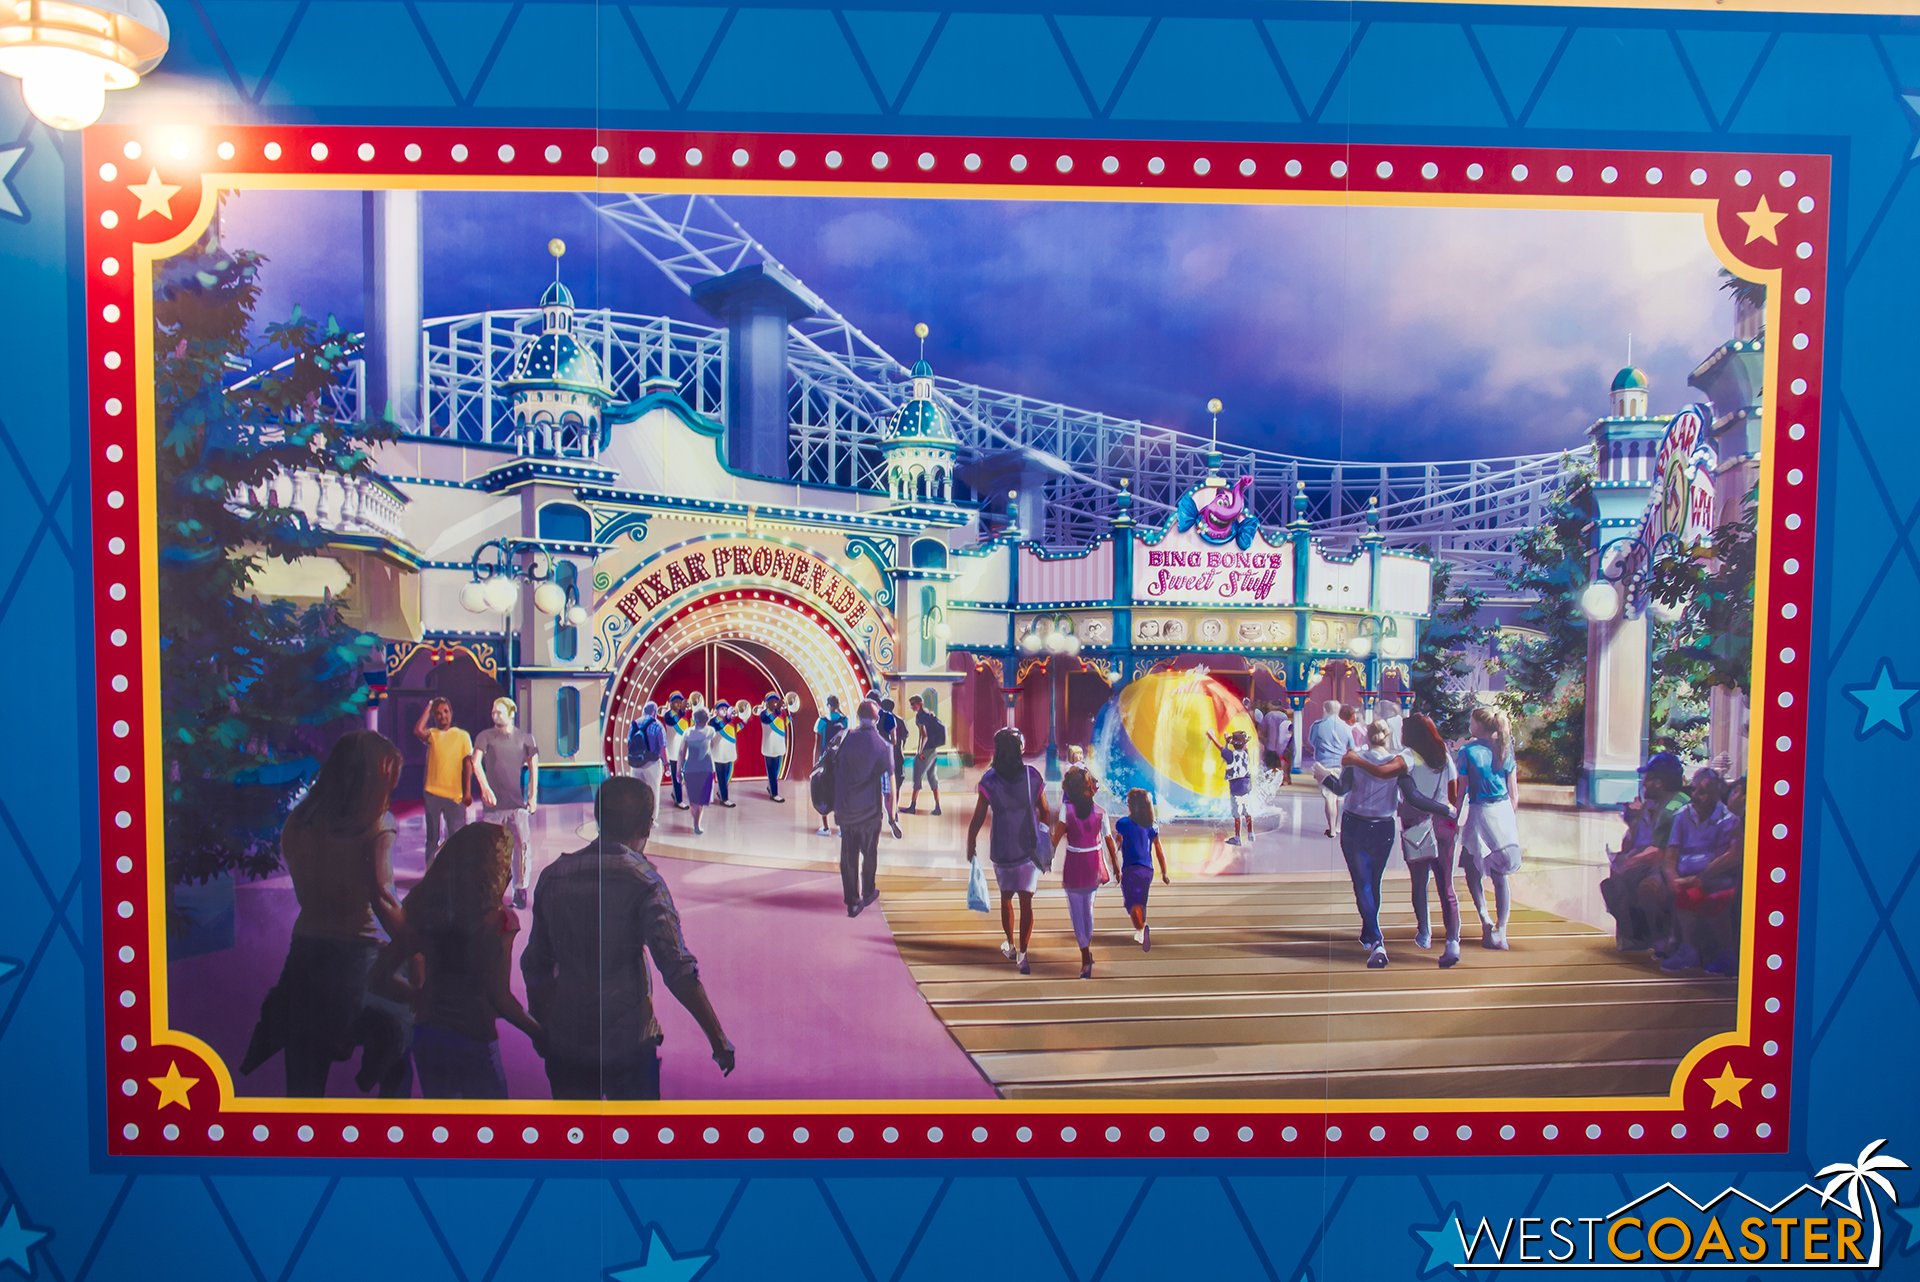 Meanwhile, the Victorian seaside facades will receive facelifts that tie them to Pixar properties and themes.